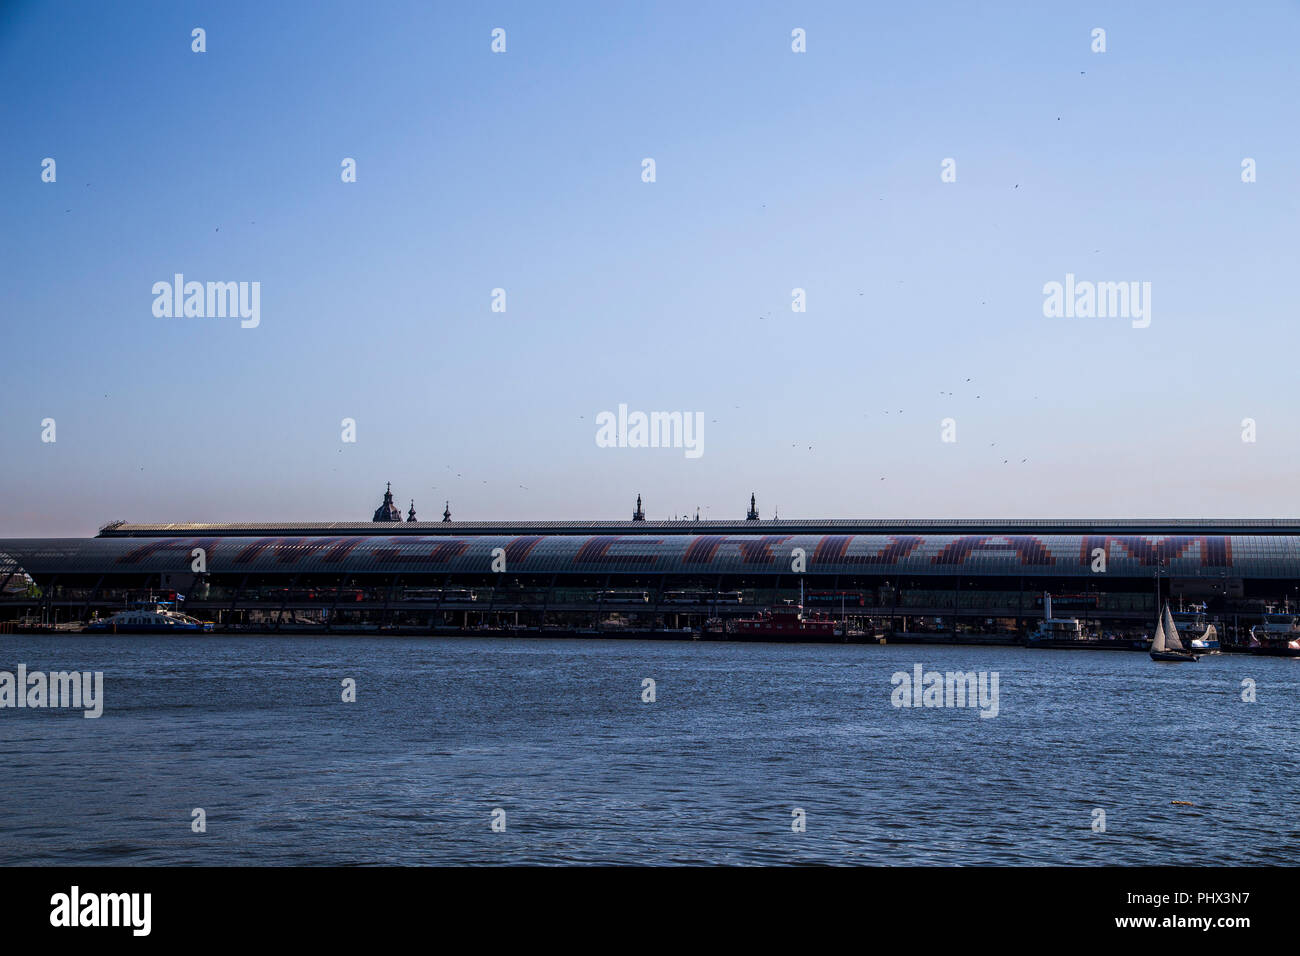 'Amsterdam Centraal' train station in Amsterdam, Netherlands - Stock Image